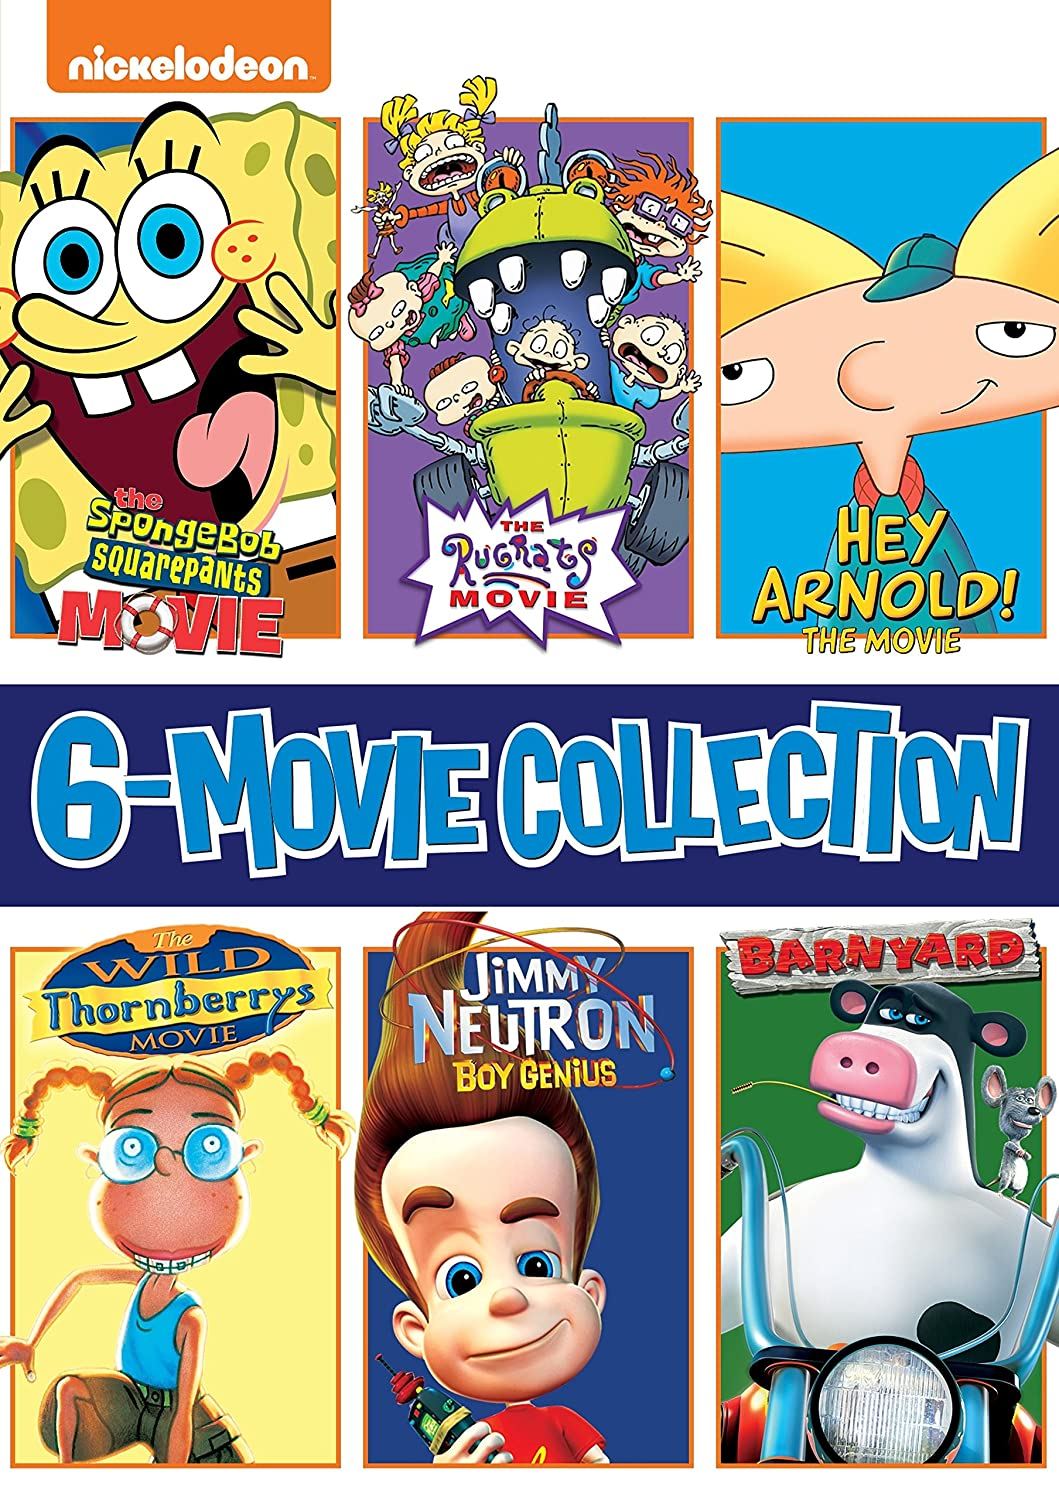 nickelodeon animated 6 movie collection the rugrats movie